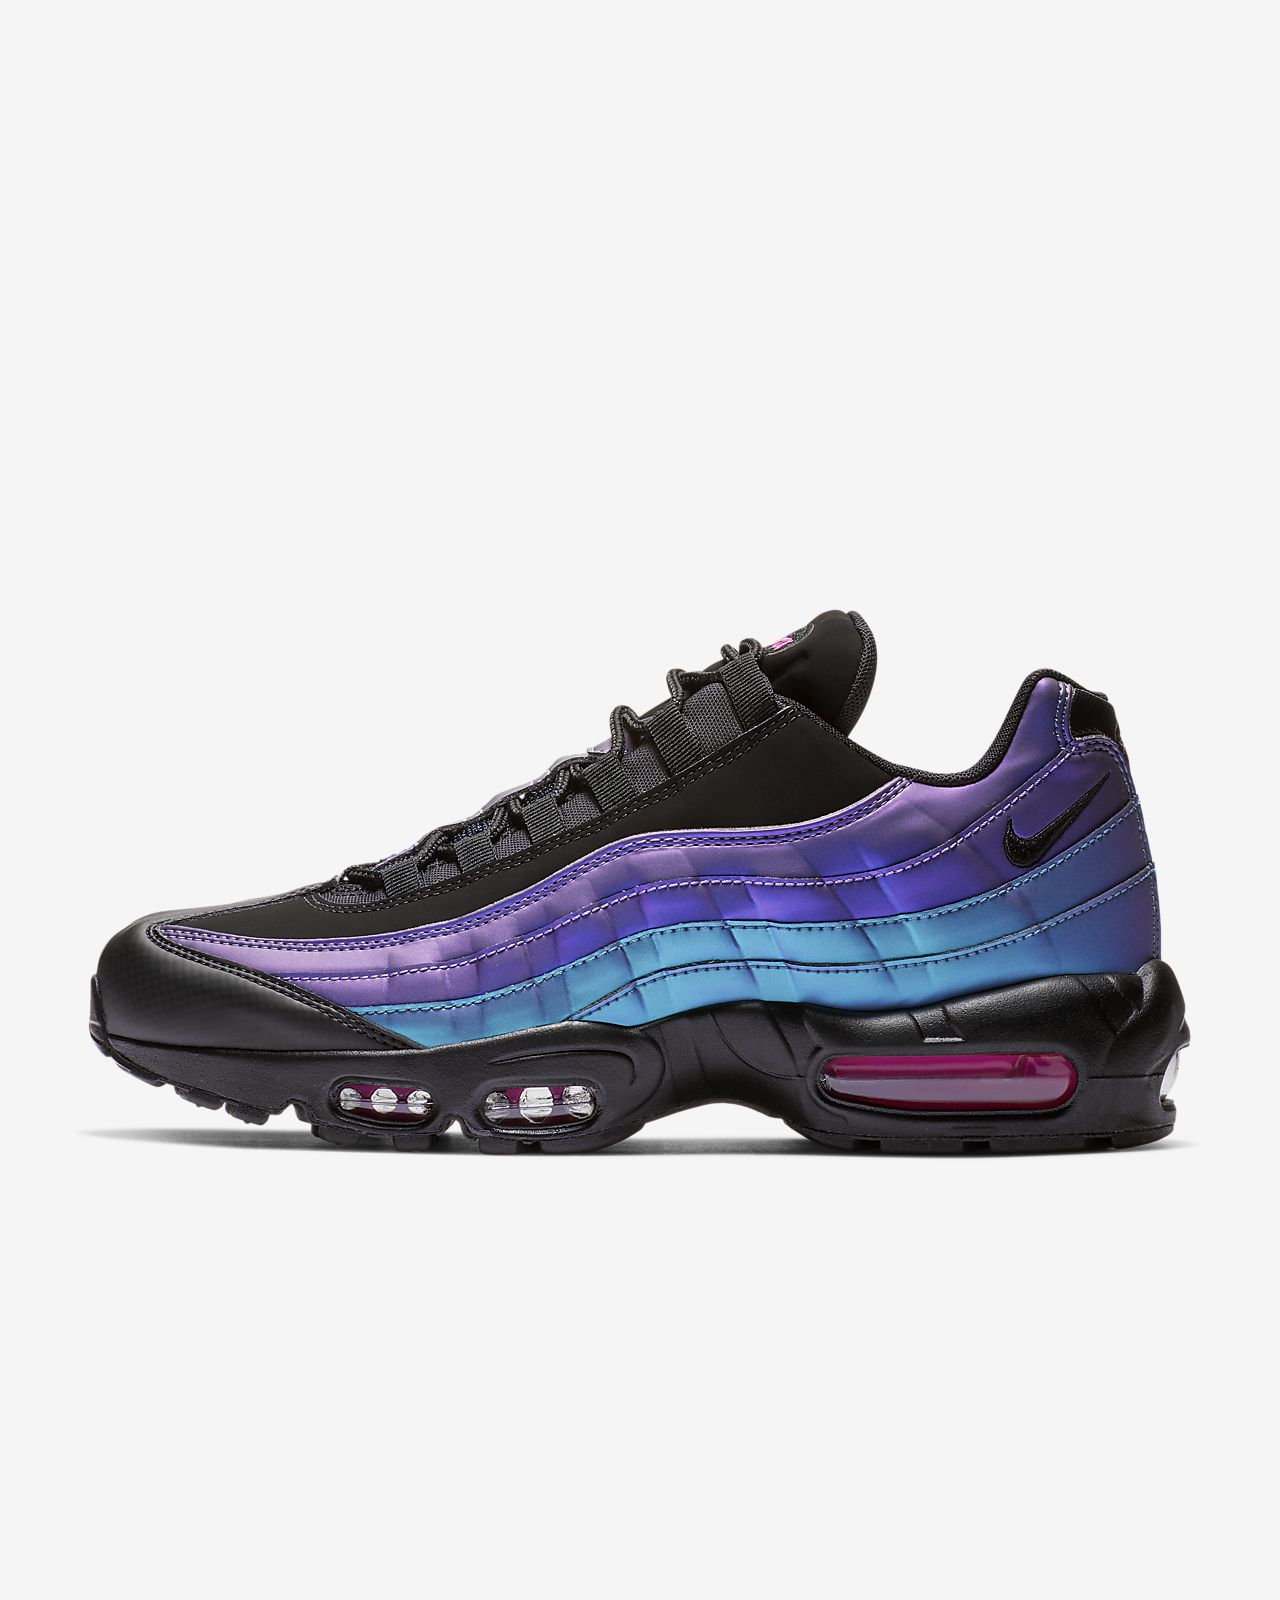 new style f3889 e078e ... Chaussure Nike Air Max 95 Premium pour Homme